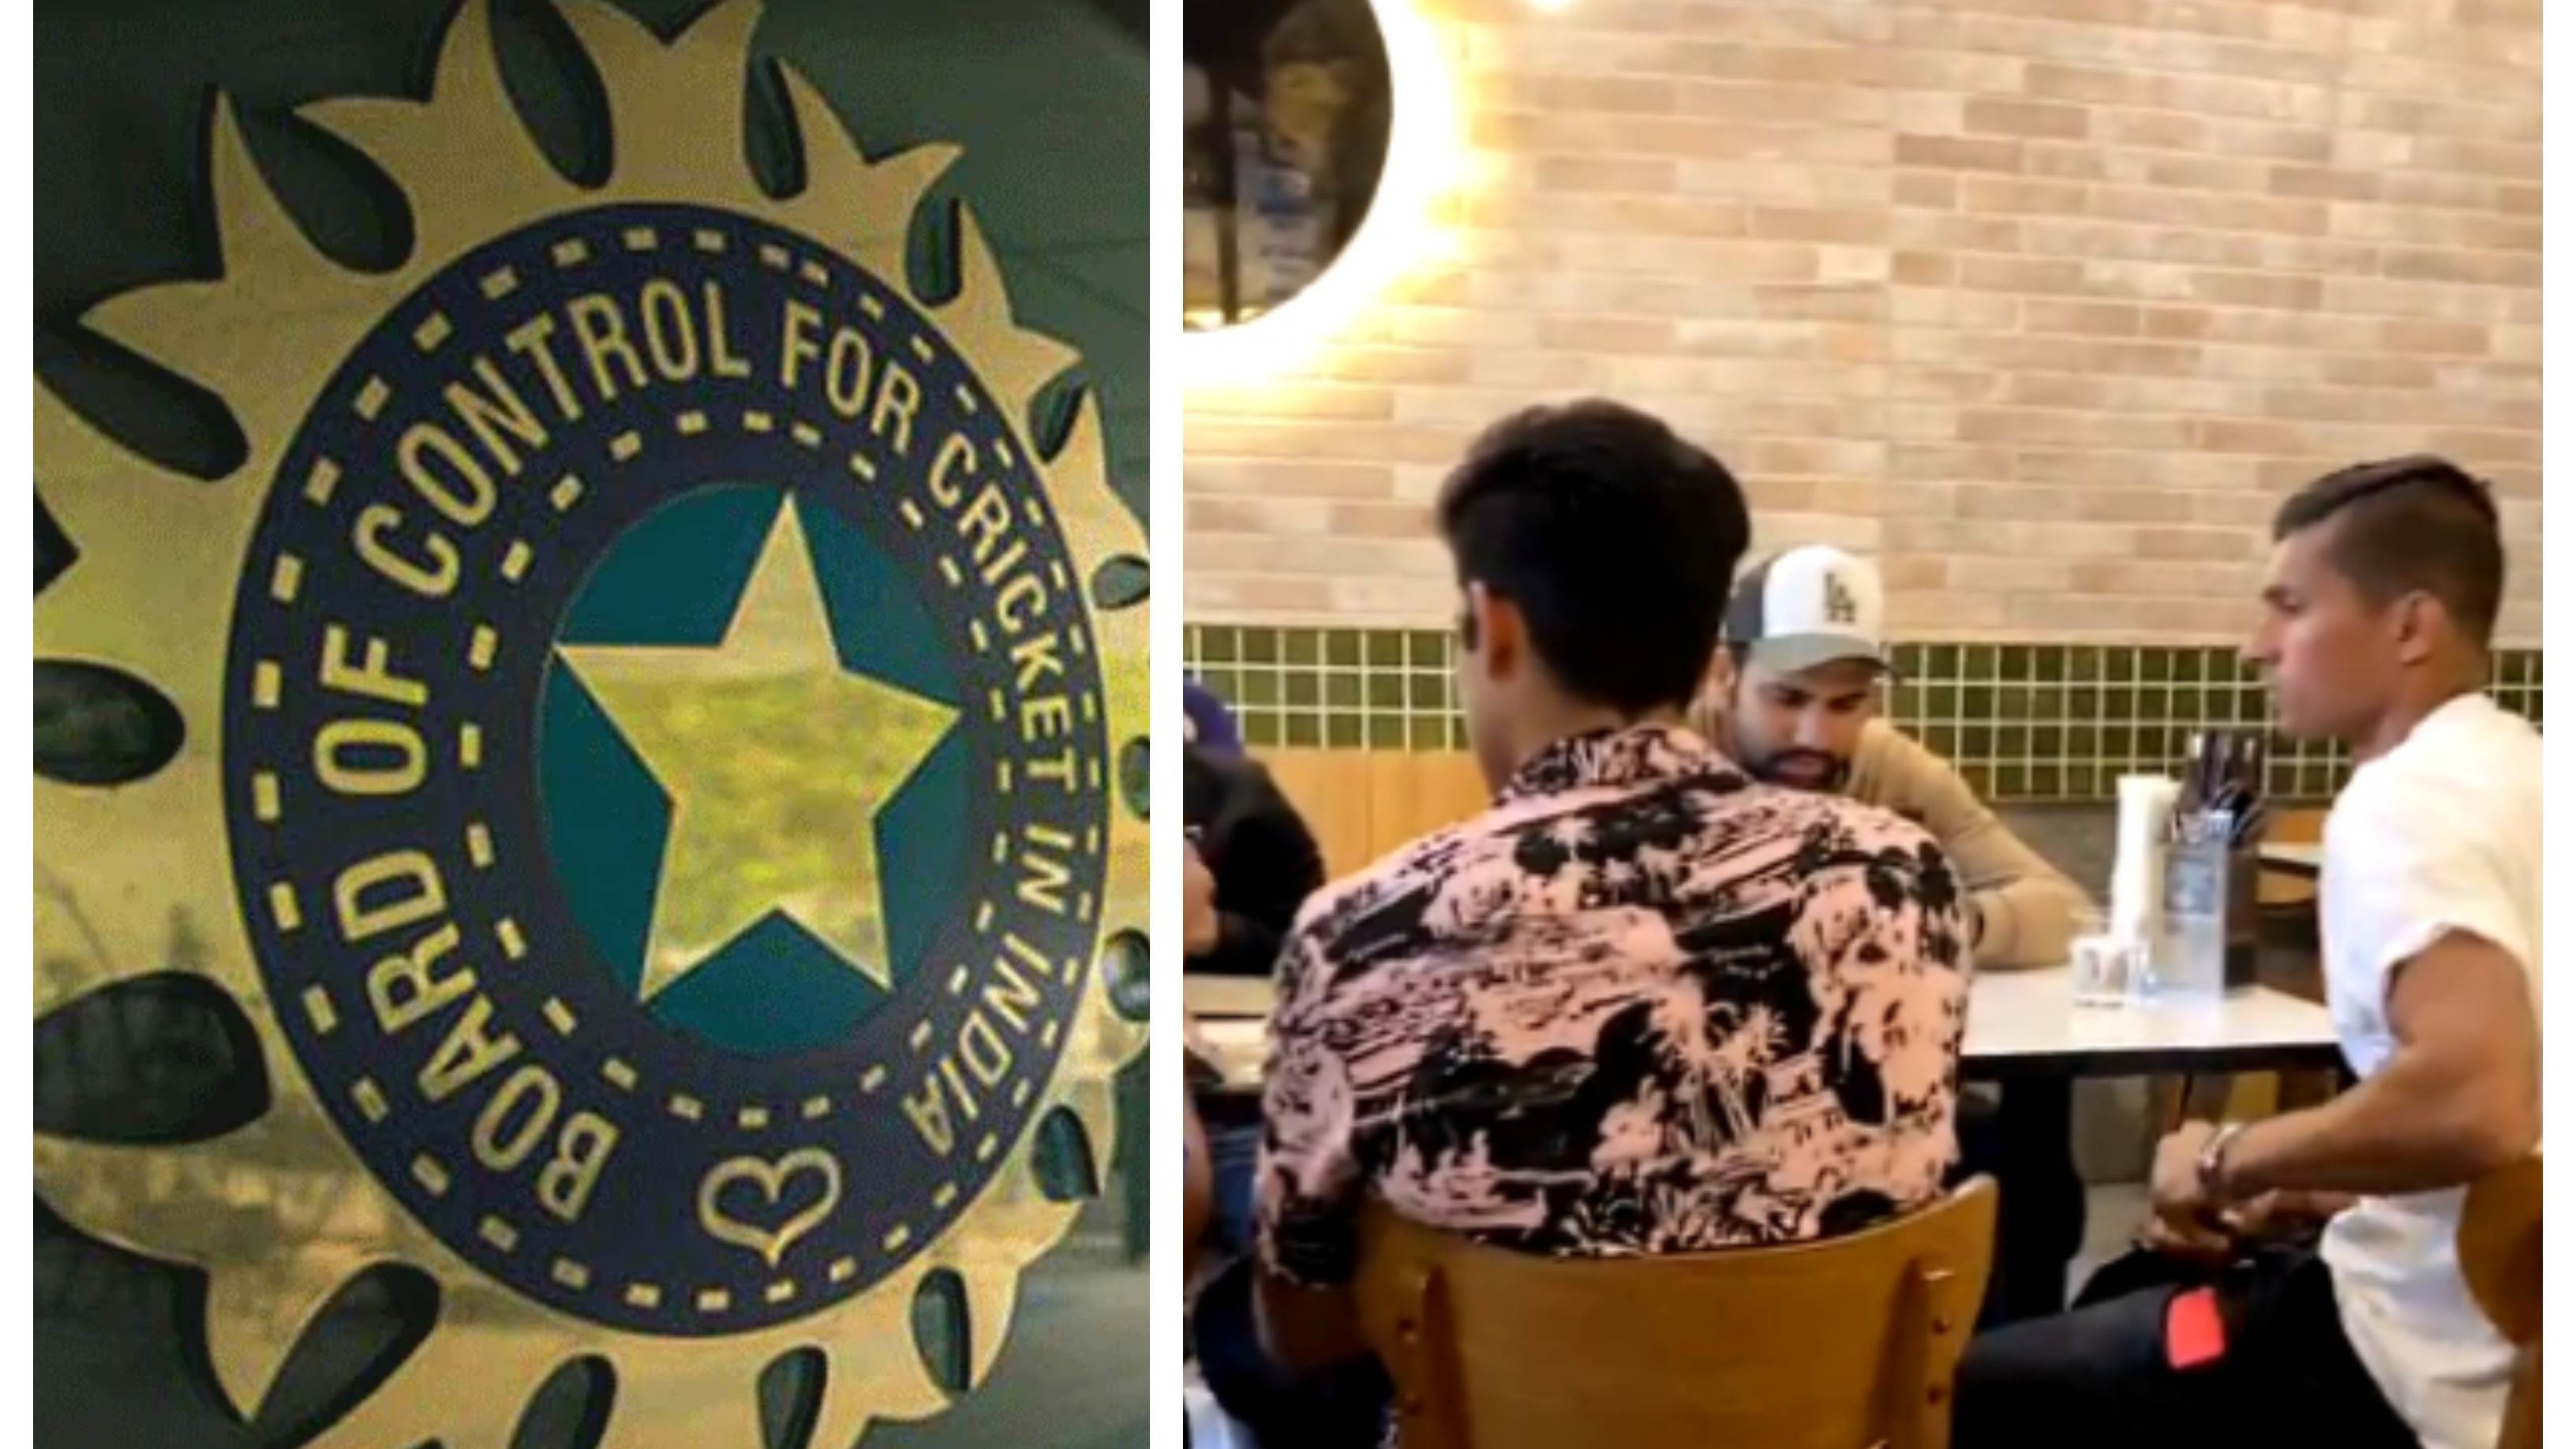 AUS v IND 2020-21: 'There has been no breach in bio-security protocols', clarifies BCCI official